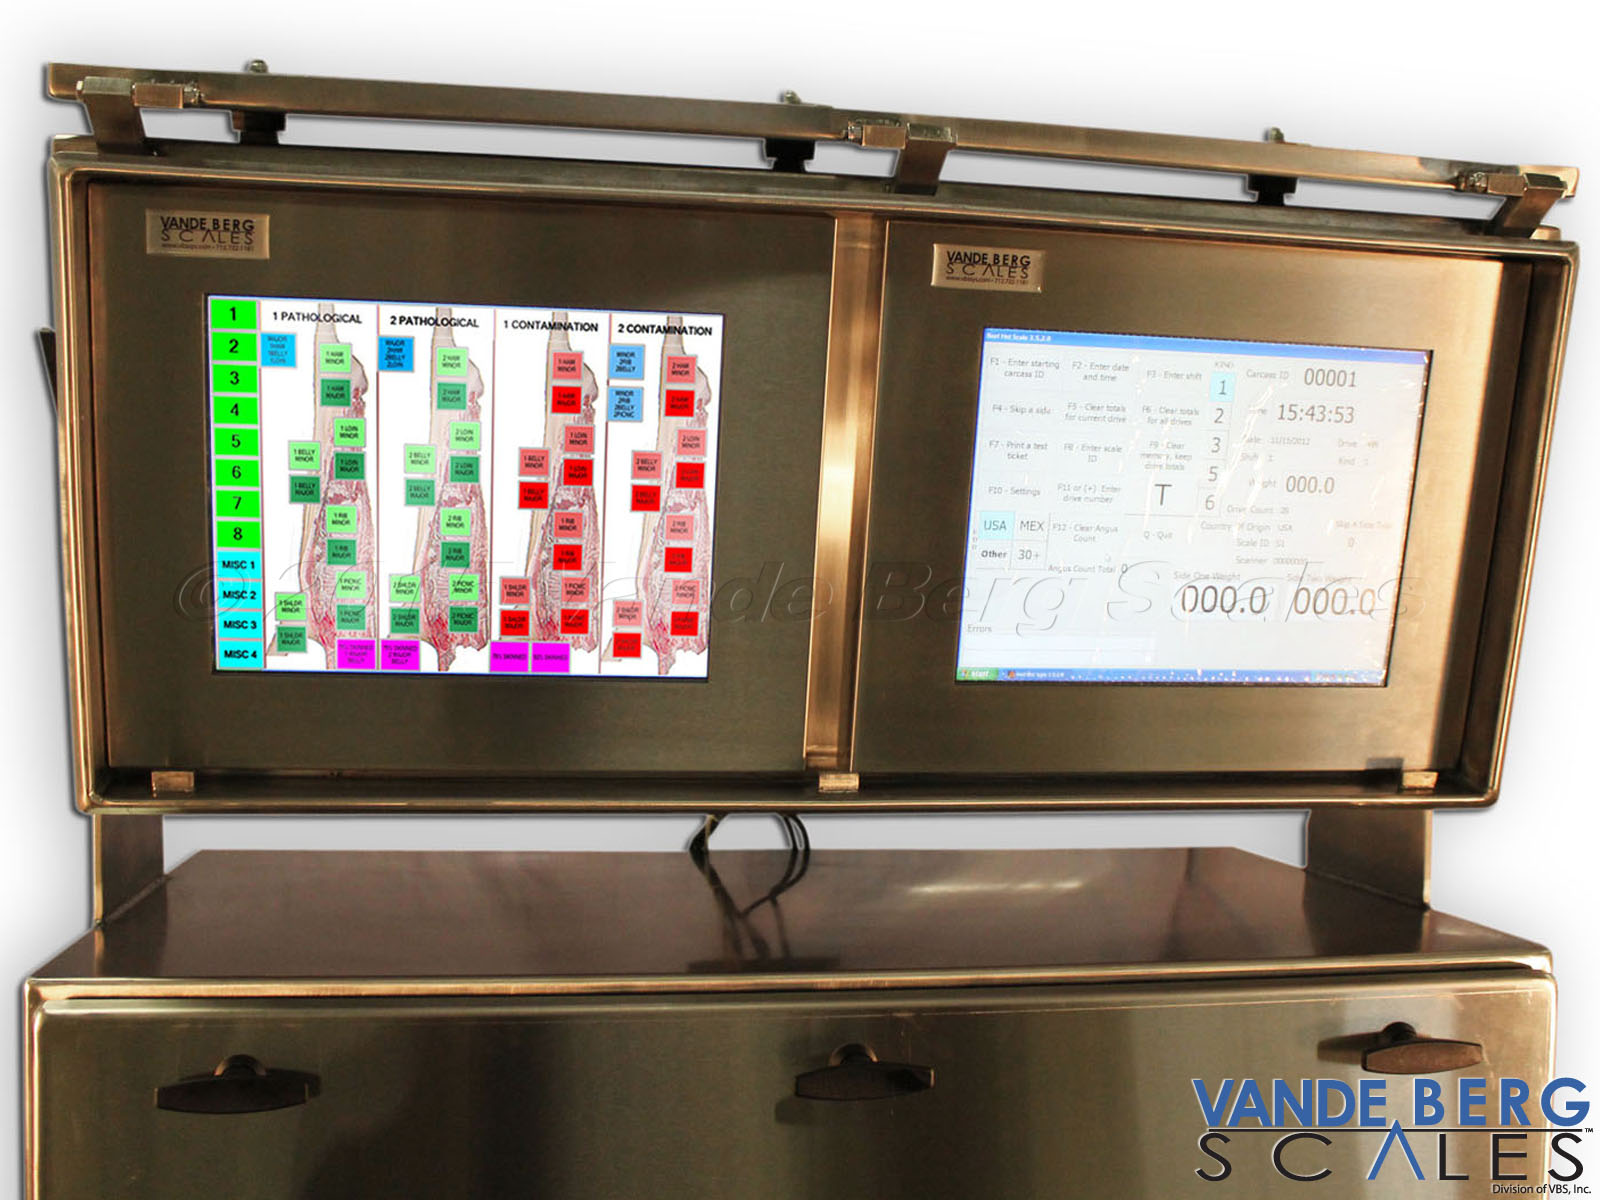 Carcass grading software easily interfaces with our Washdown Rated Touchscreen HMI.